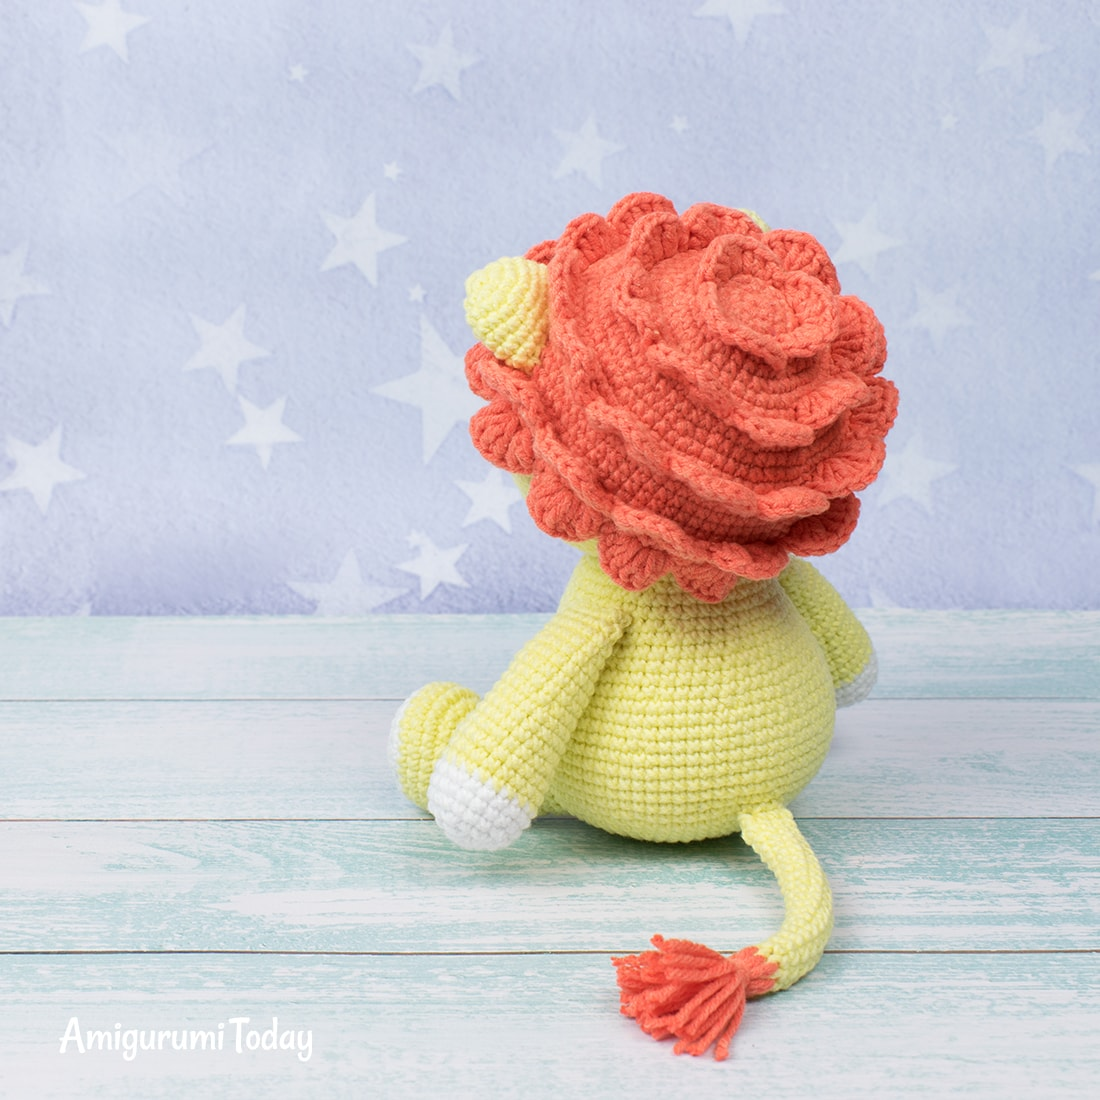 Amigurumi lion - Free crochet pattern by Amigurumi Today